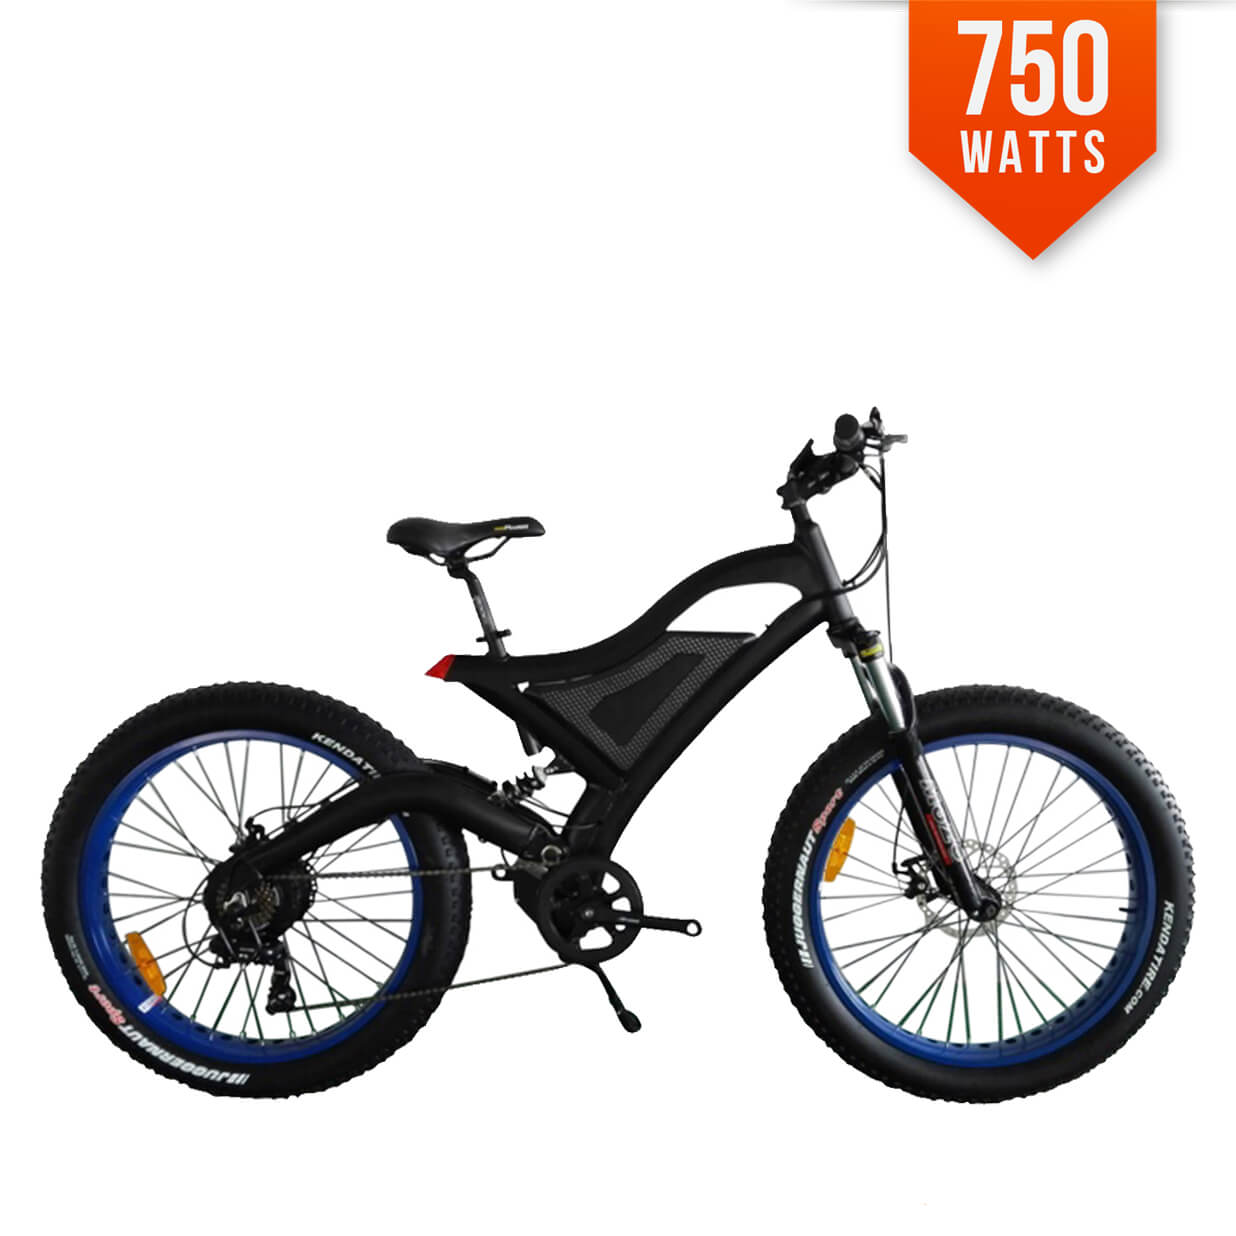 ac807a8a38b F-35 750W Black Frame Fat Tire Electric Bike Bicycle